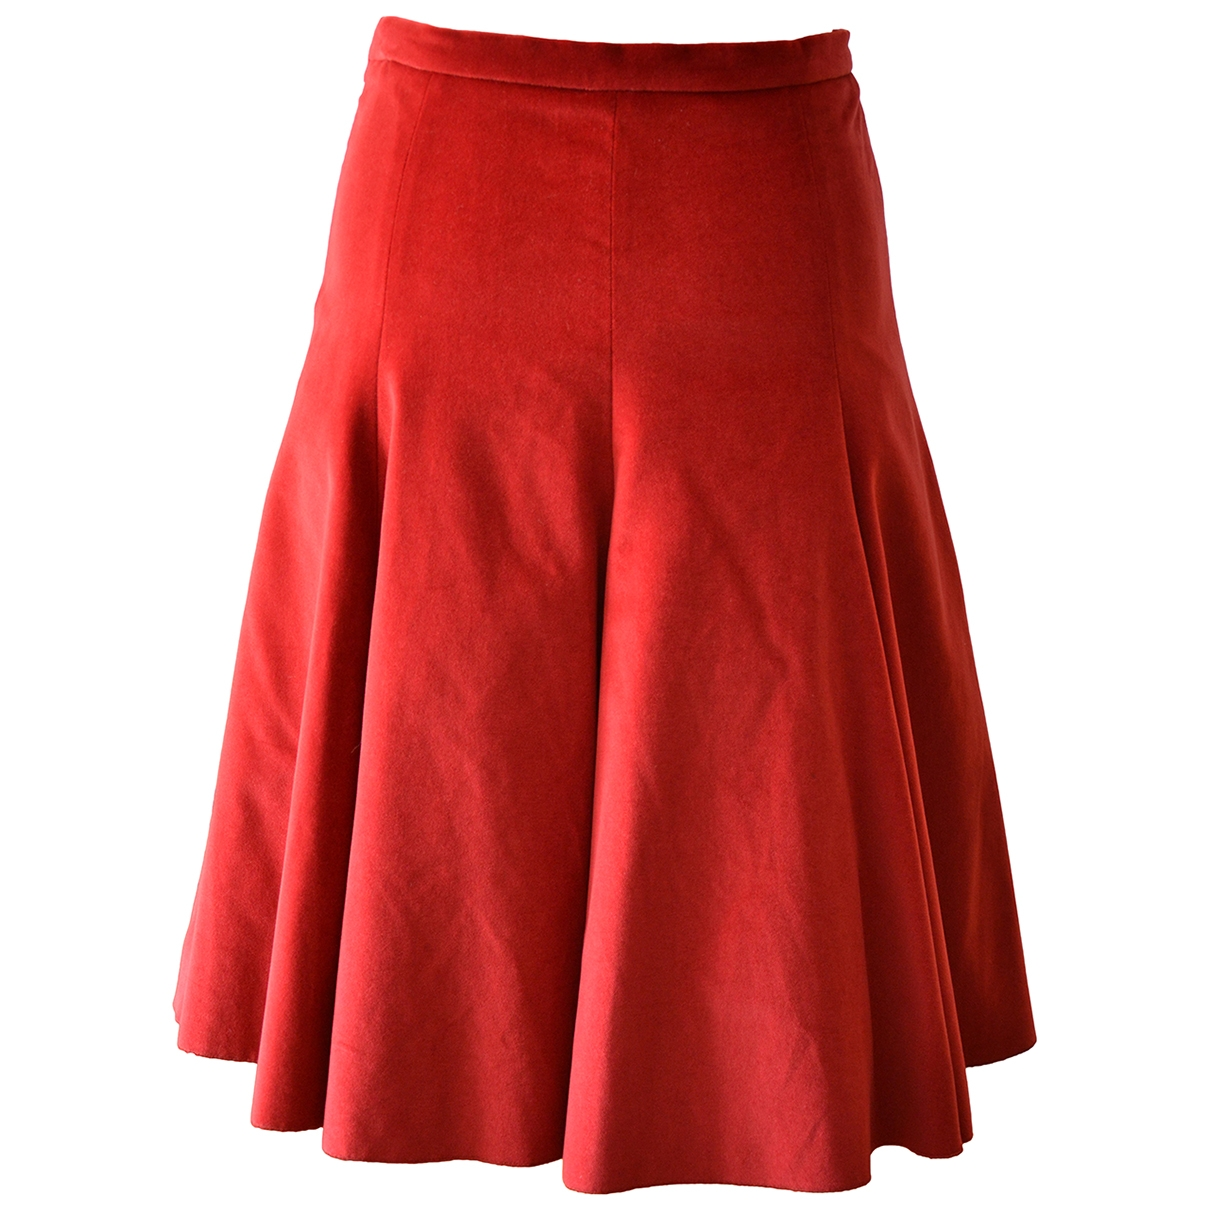 Moschino Cheap And Chic \N Red Cotton skirt for Women 42 IT